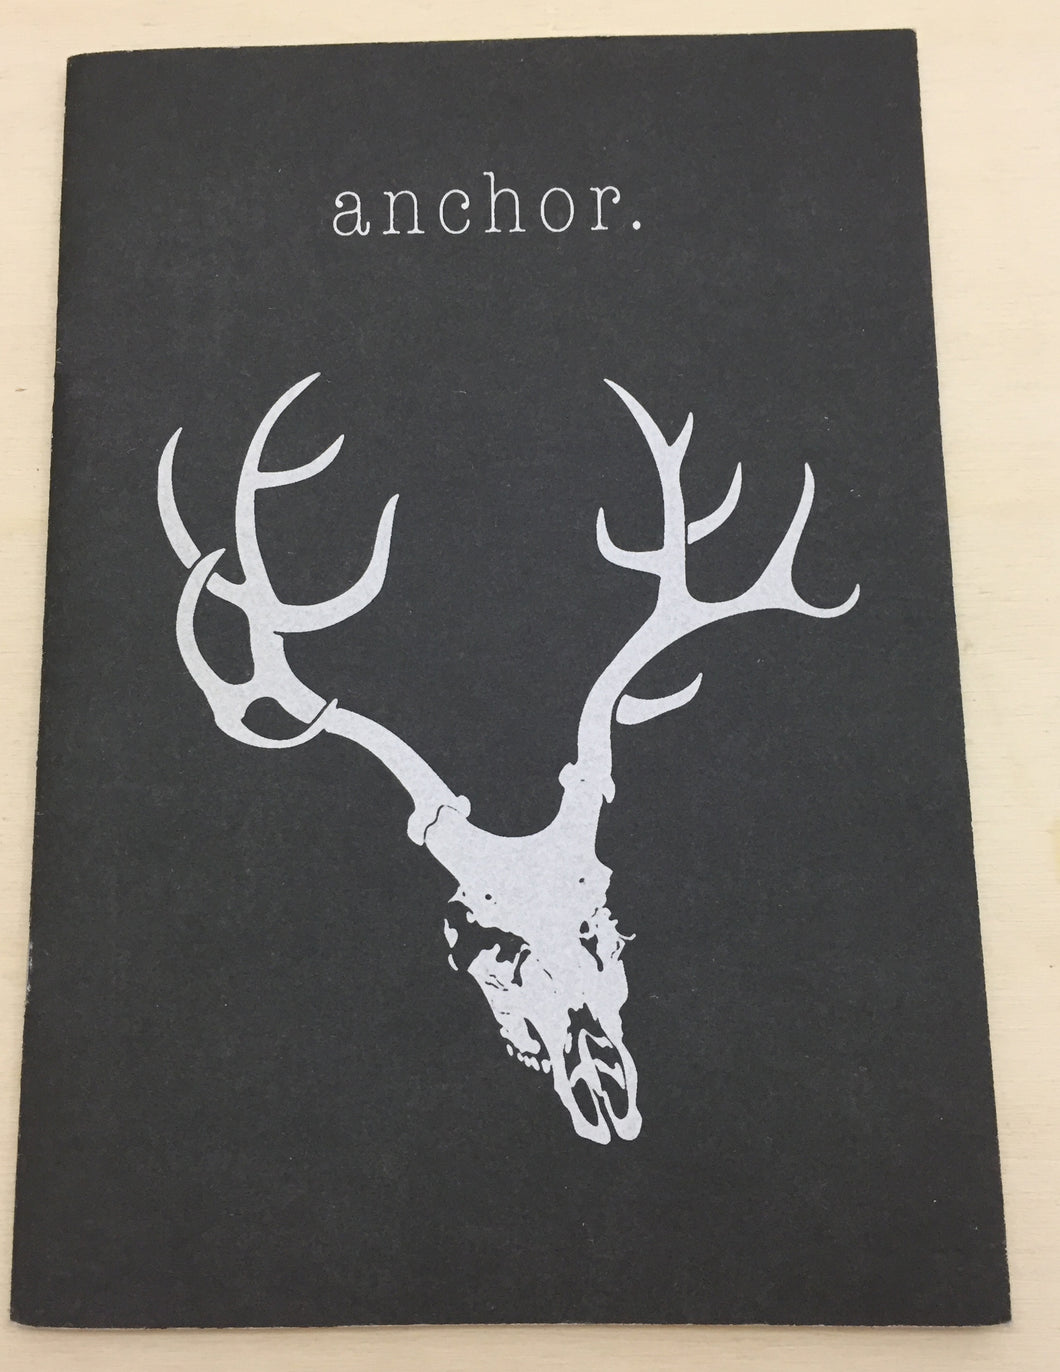 Anchor. | Franklin Obregon (PogoBooks)